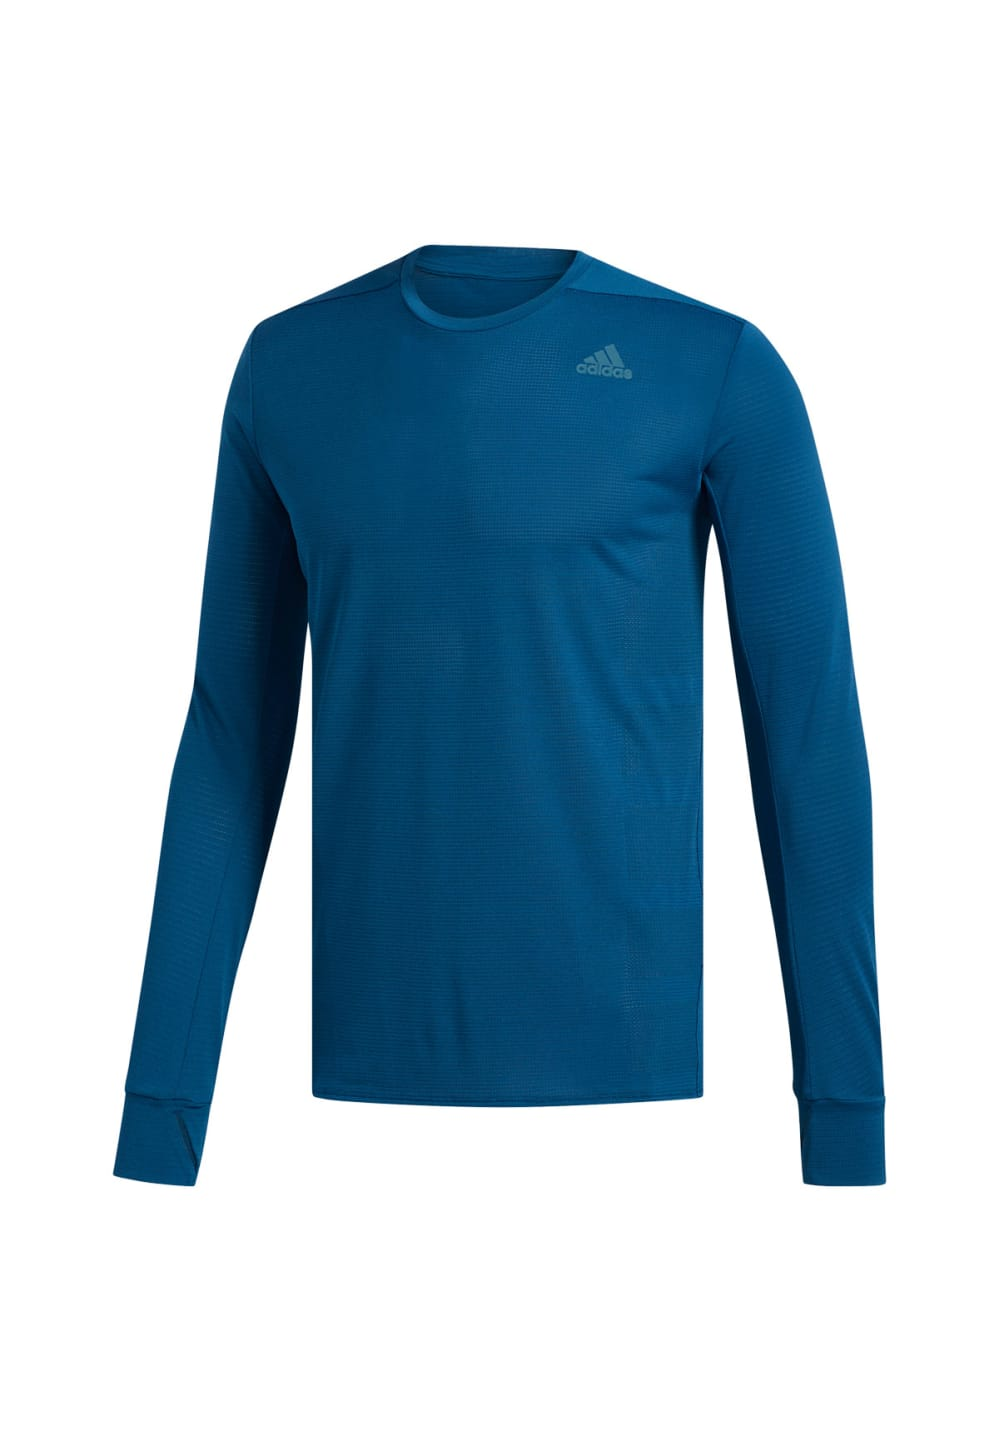 9d8400ab2 ... adidas Supernova Tee - Running tops for Men - Blue. Back to Overview.  1  2  3  4  5. Previous